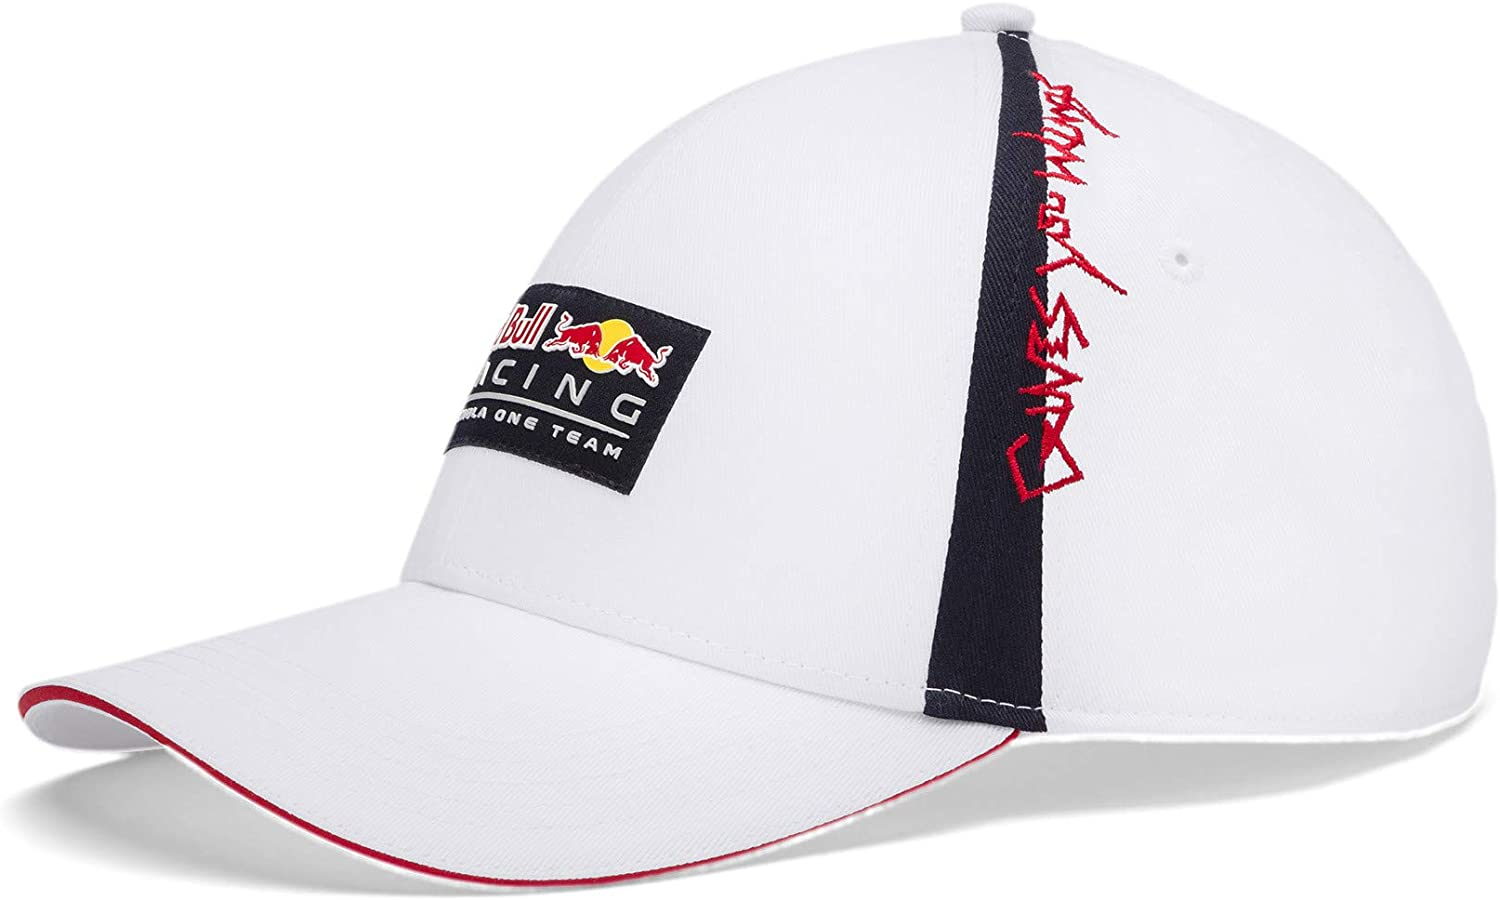 PUMA Red Bull Racing Lifestyle White Hat